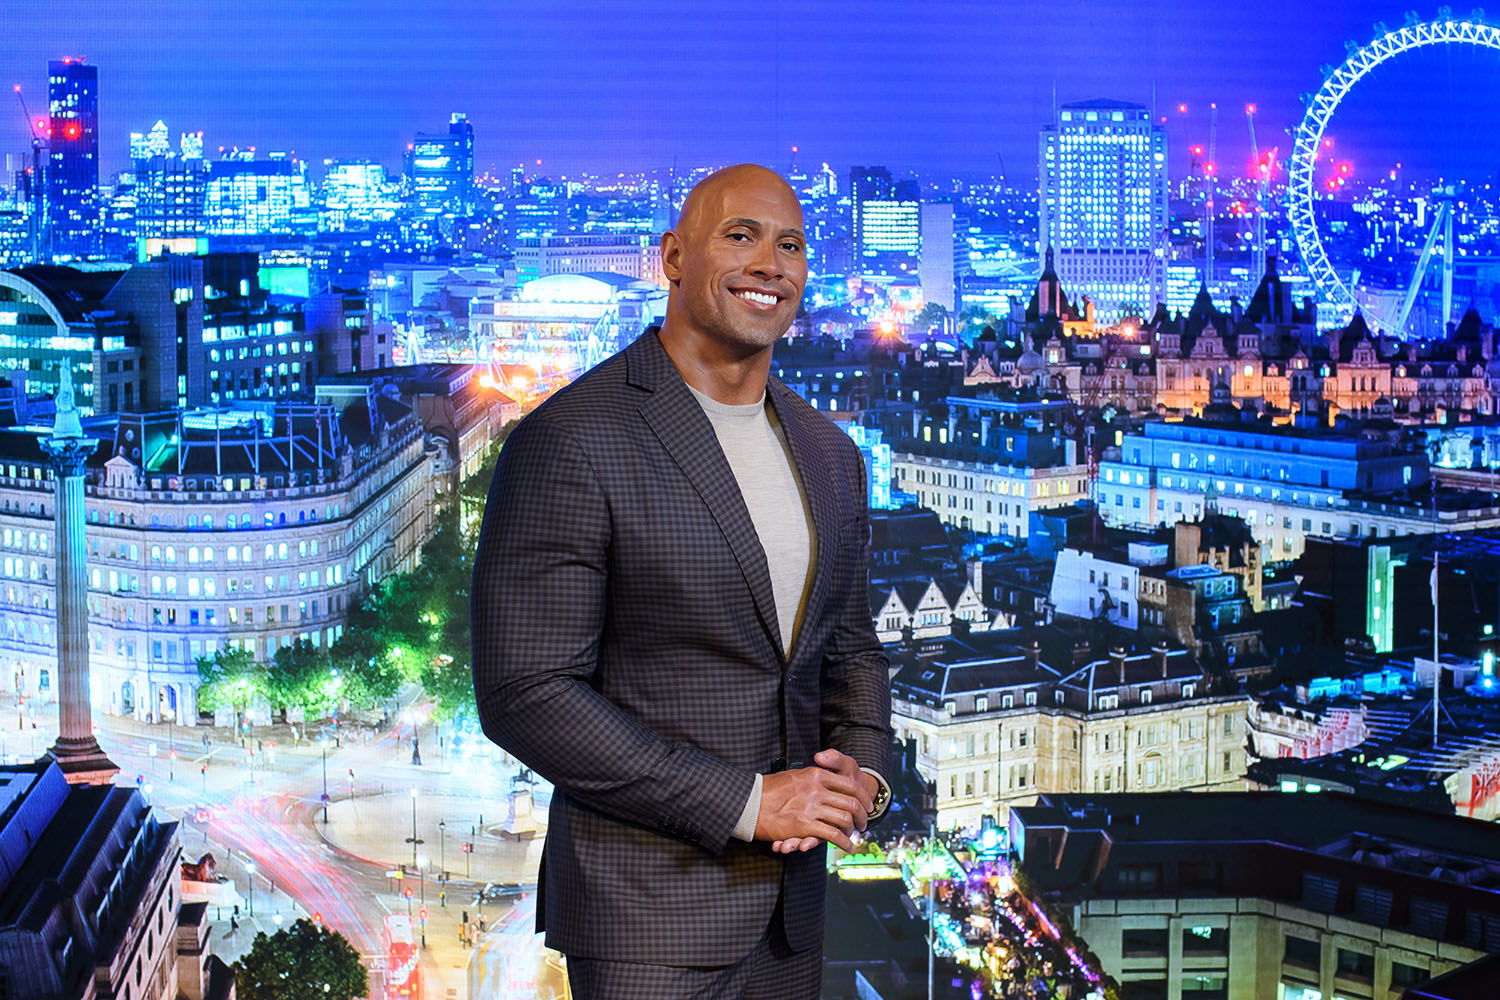 Dwayne Johnson's figure at Madame Tussauds